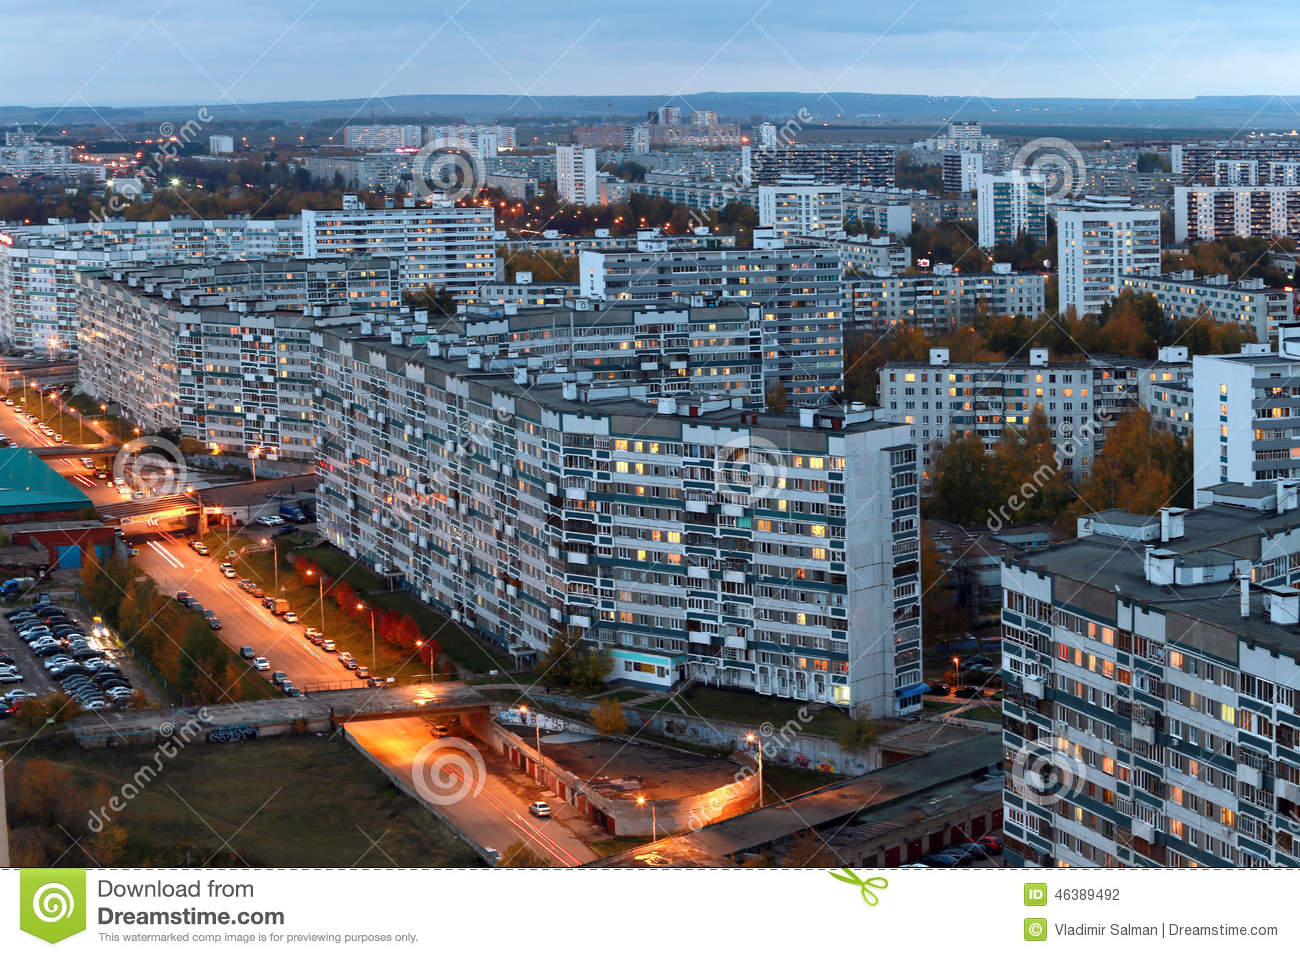 Naberezhnye Chelny Russia  city pictures gallery : Naberezhnye Chelny, Russia October 7, 2014: City Skyline with the ...